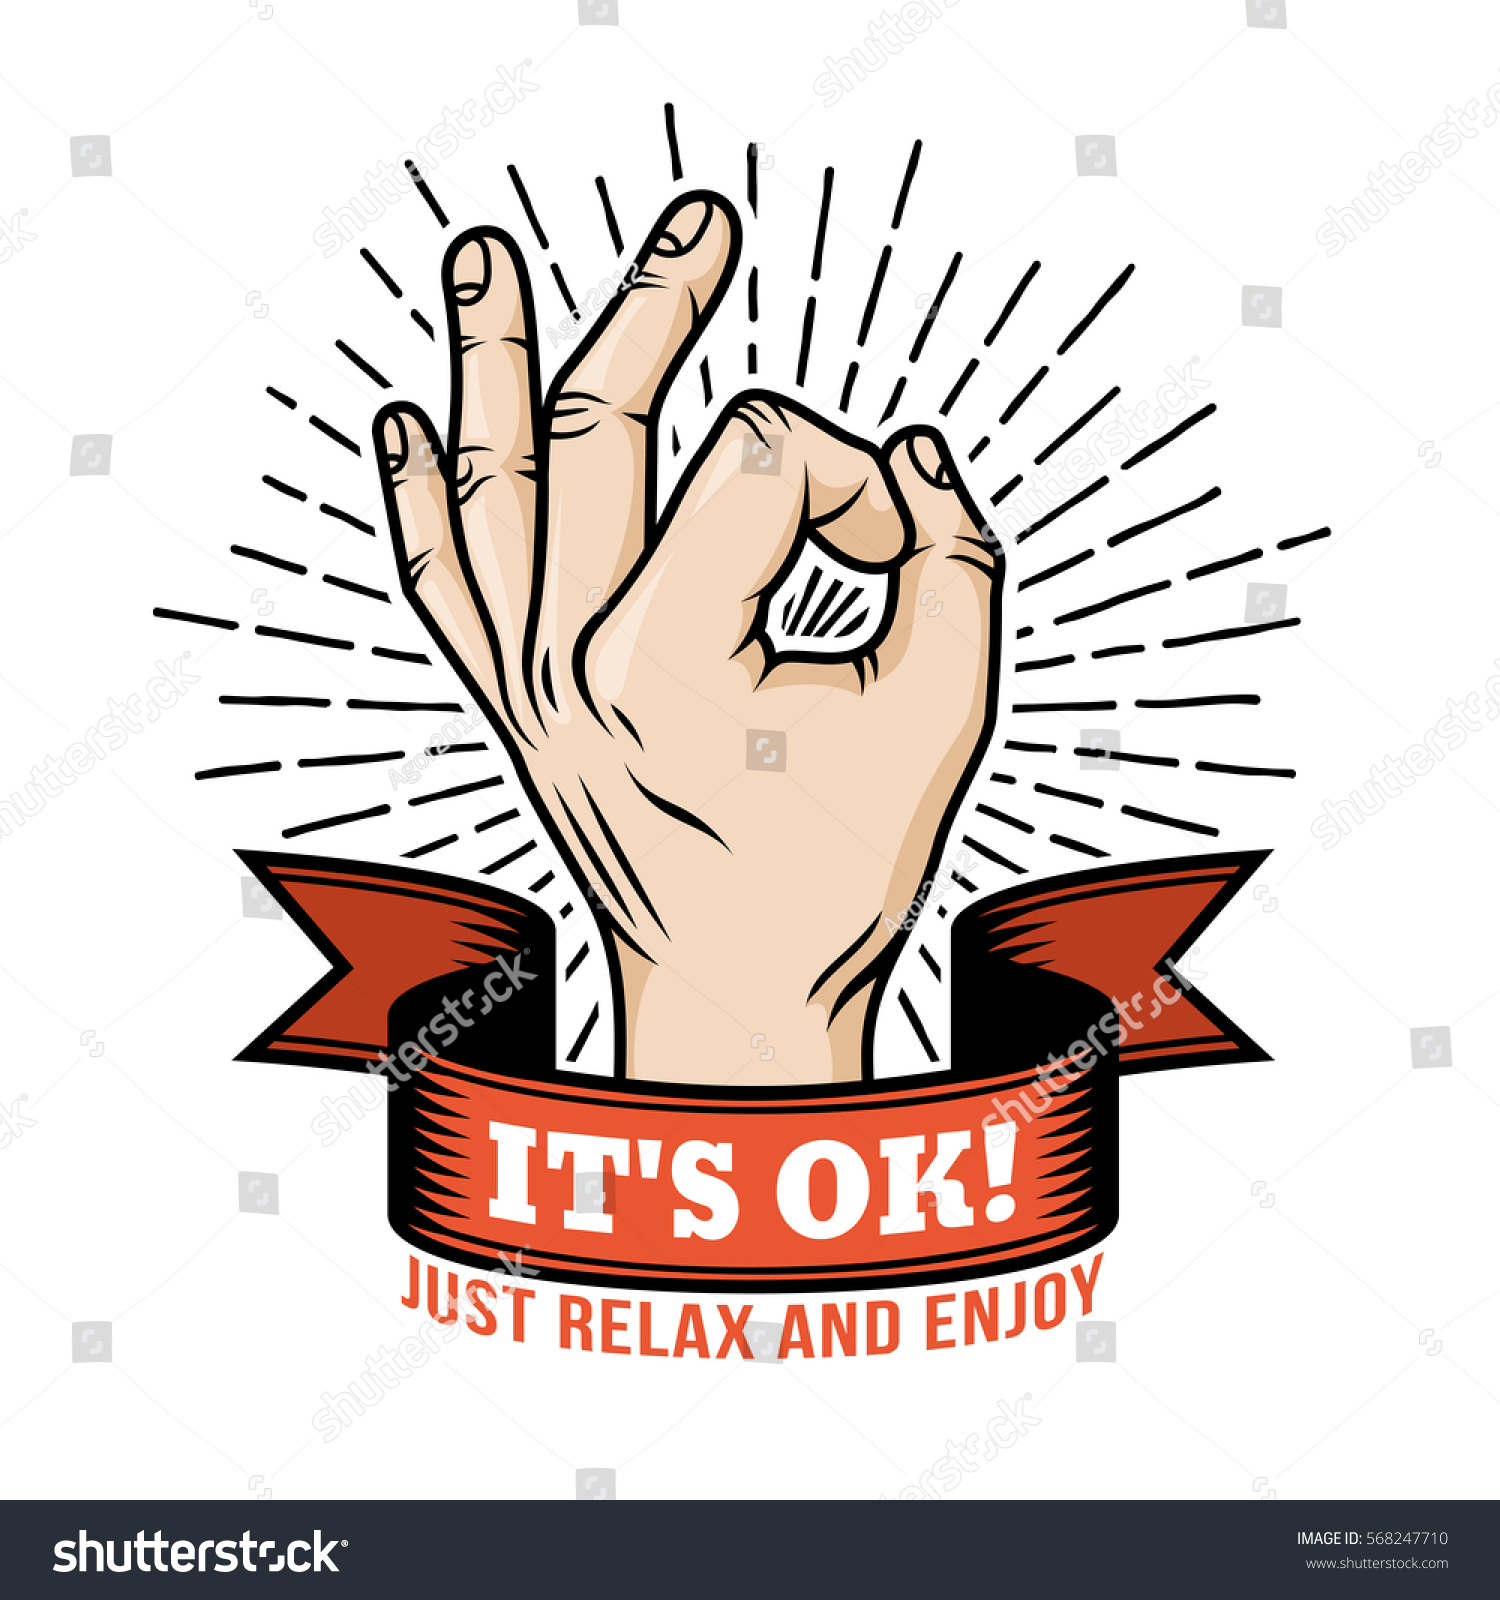 ok hand gesture retro logo template stock vector 568247710 shutterstock. Black Bedroom Furniture Sets. Home Design Ideas